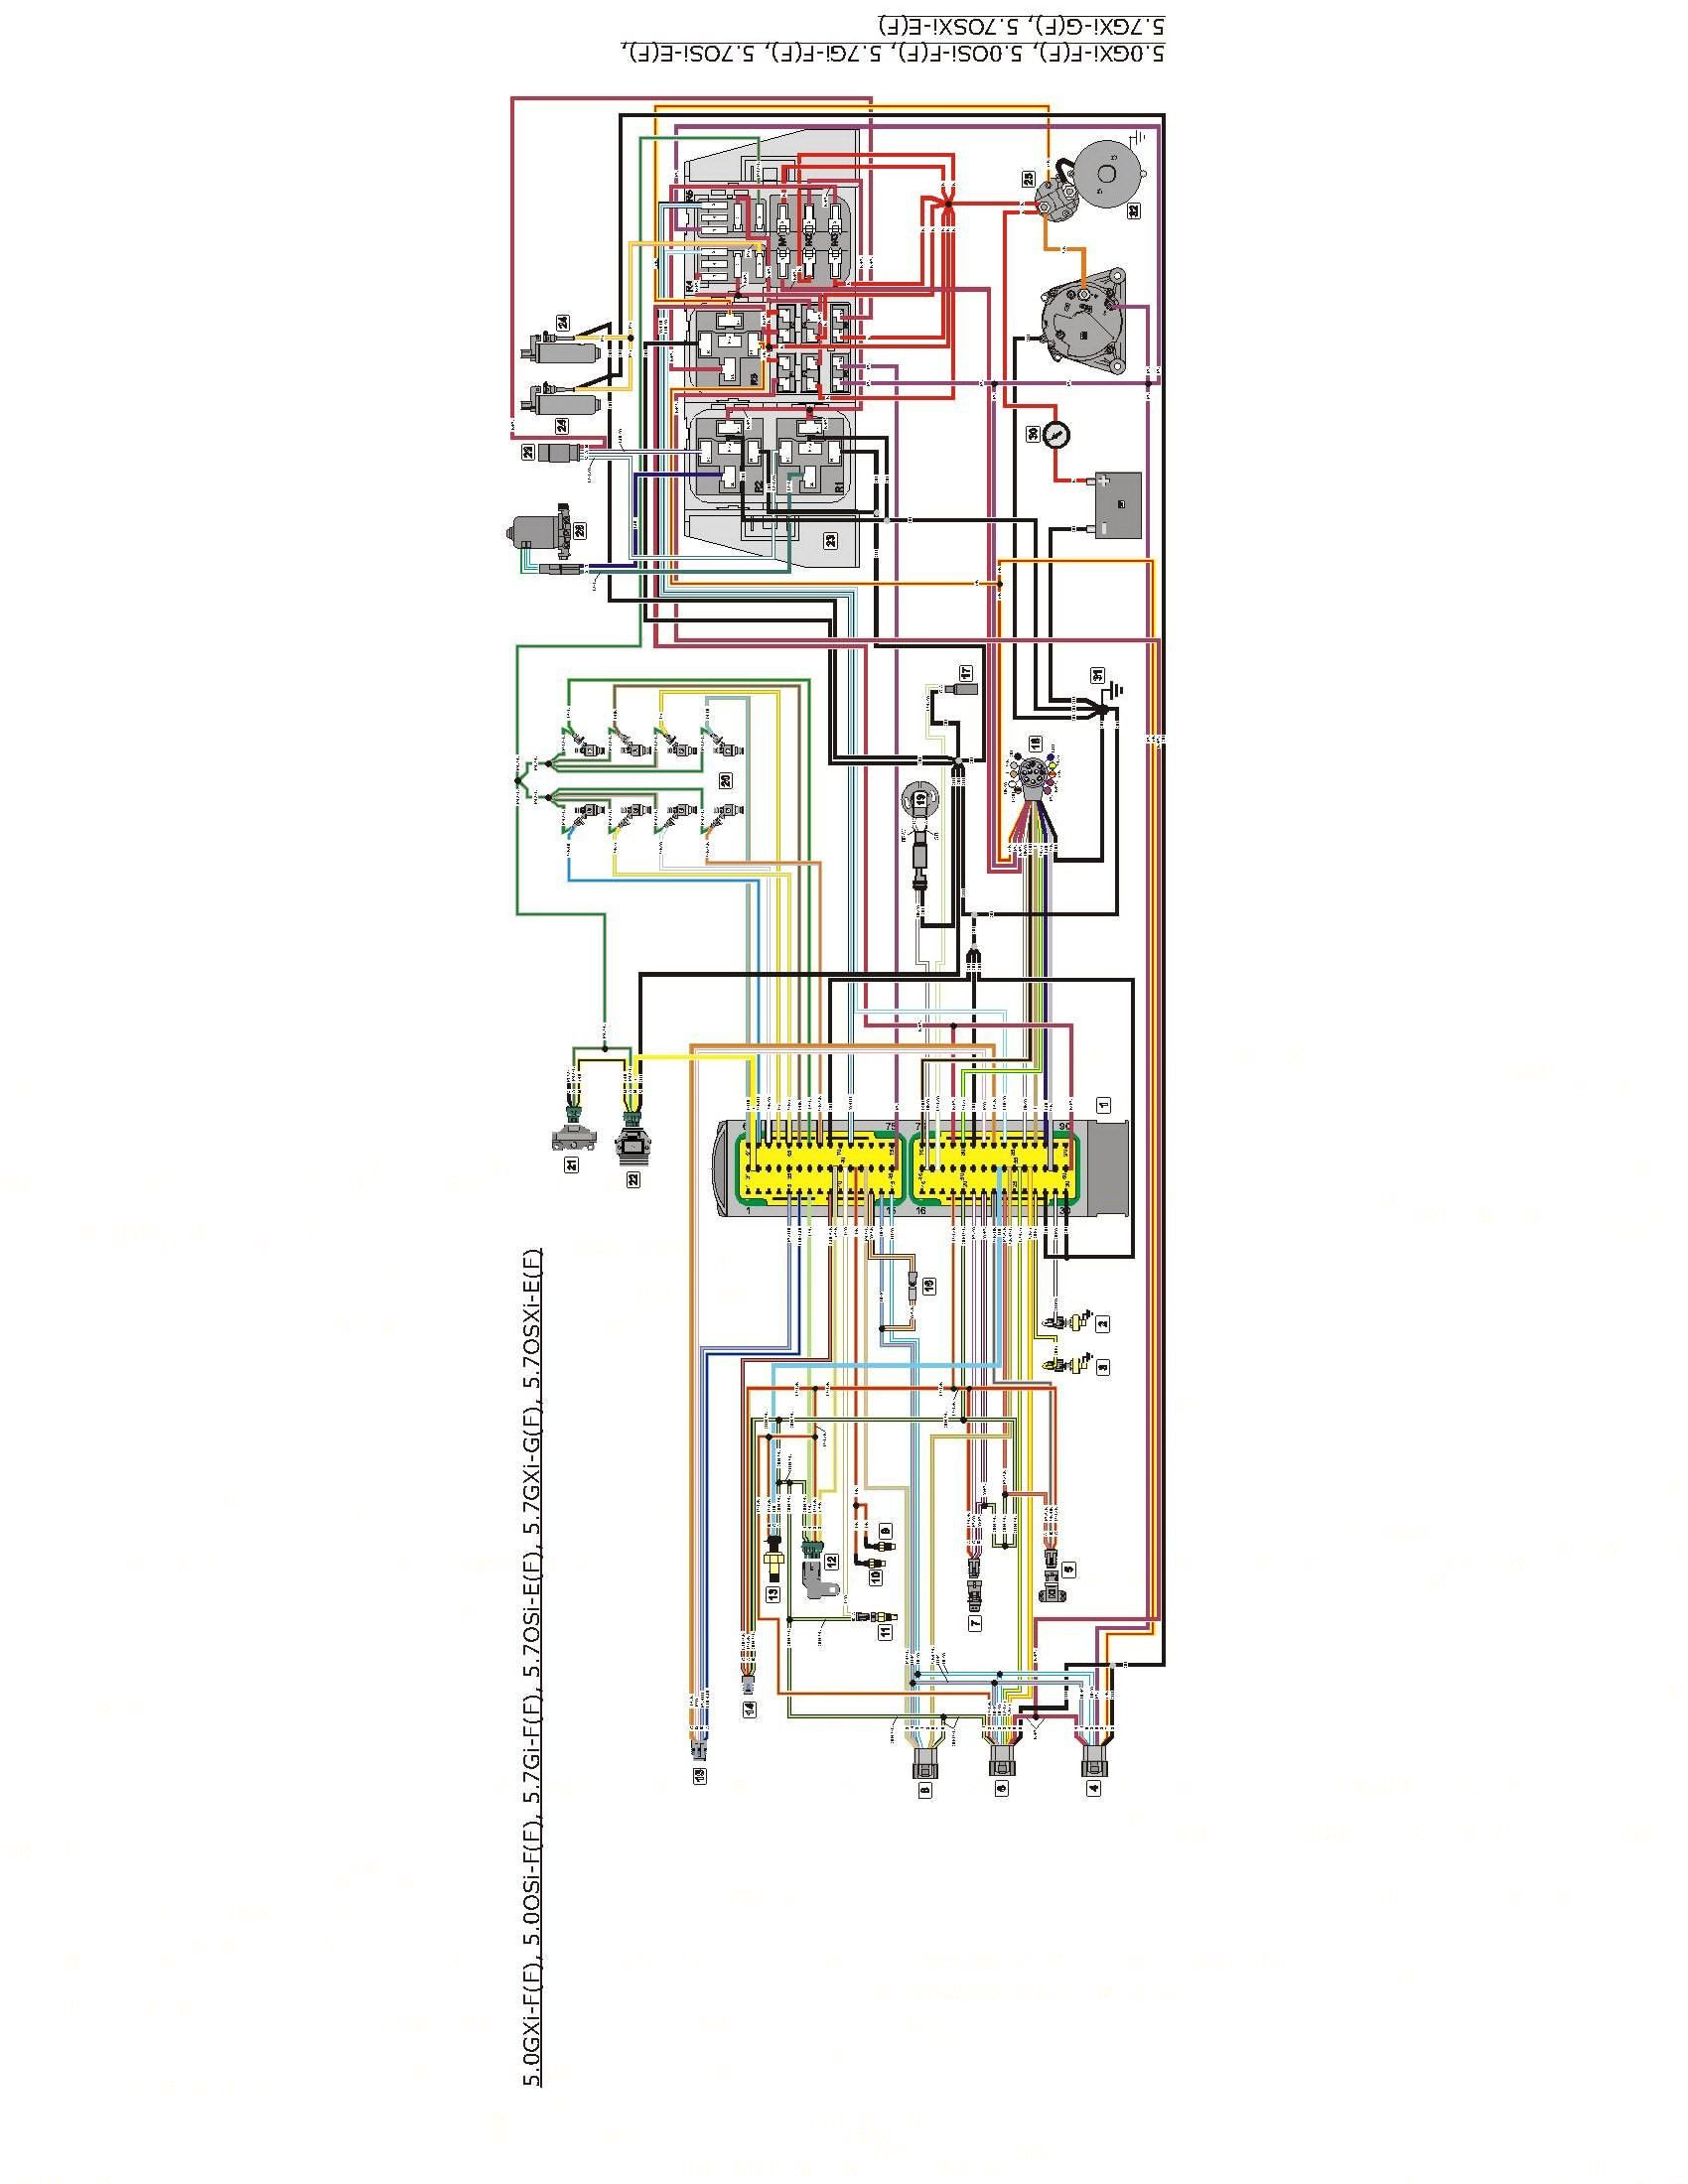 Volvo Trim Motor Wiring Diagram Another Blog About 1979 Glastron Omc Ignition Switch Mercury Outboard Power Lovely For Rh Pinterest Com